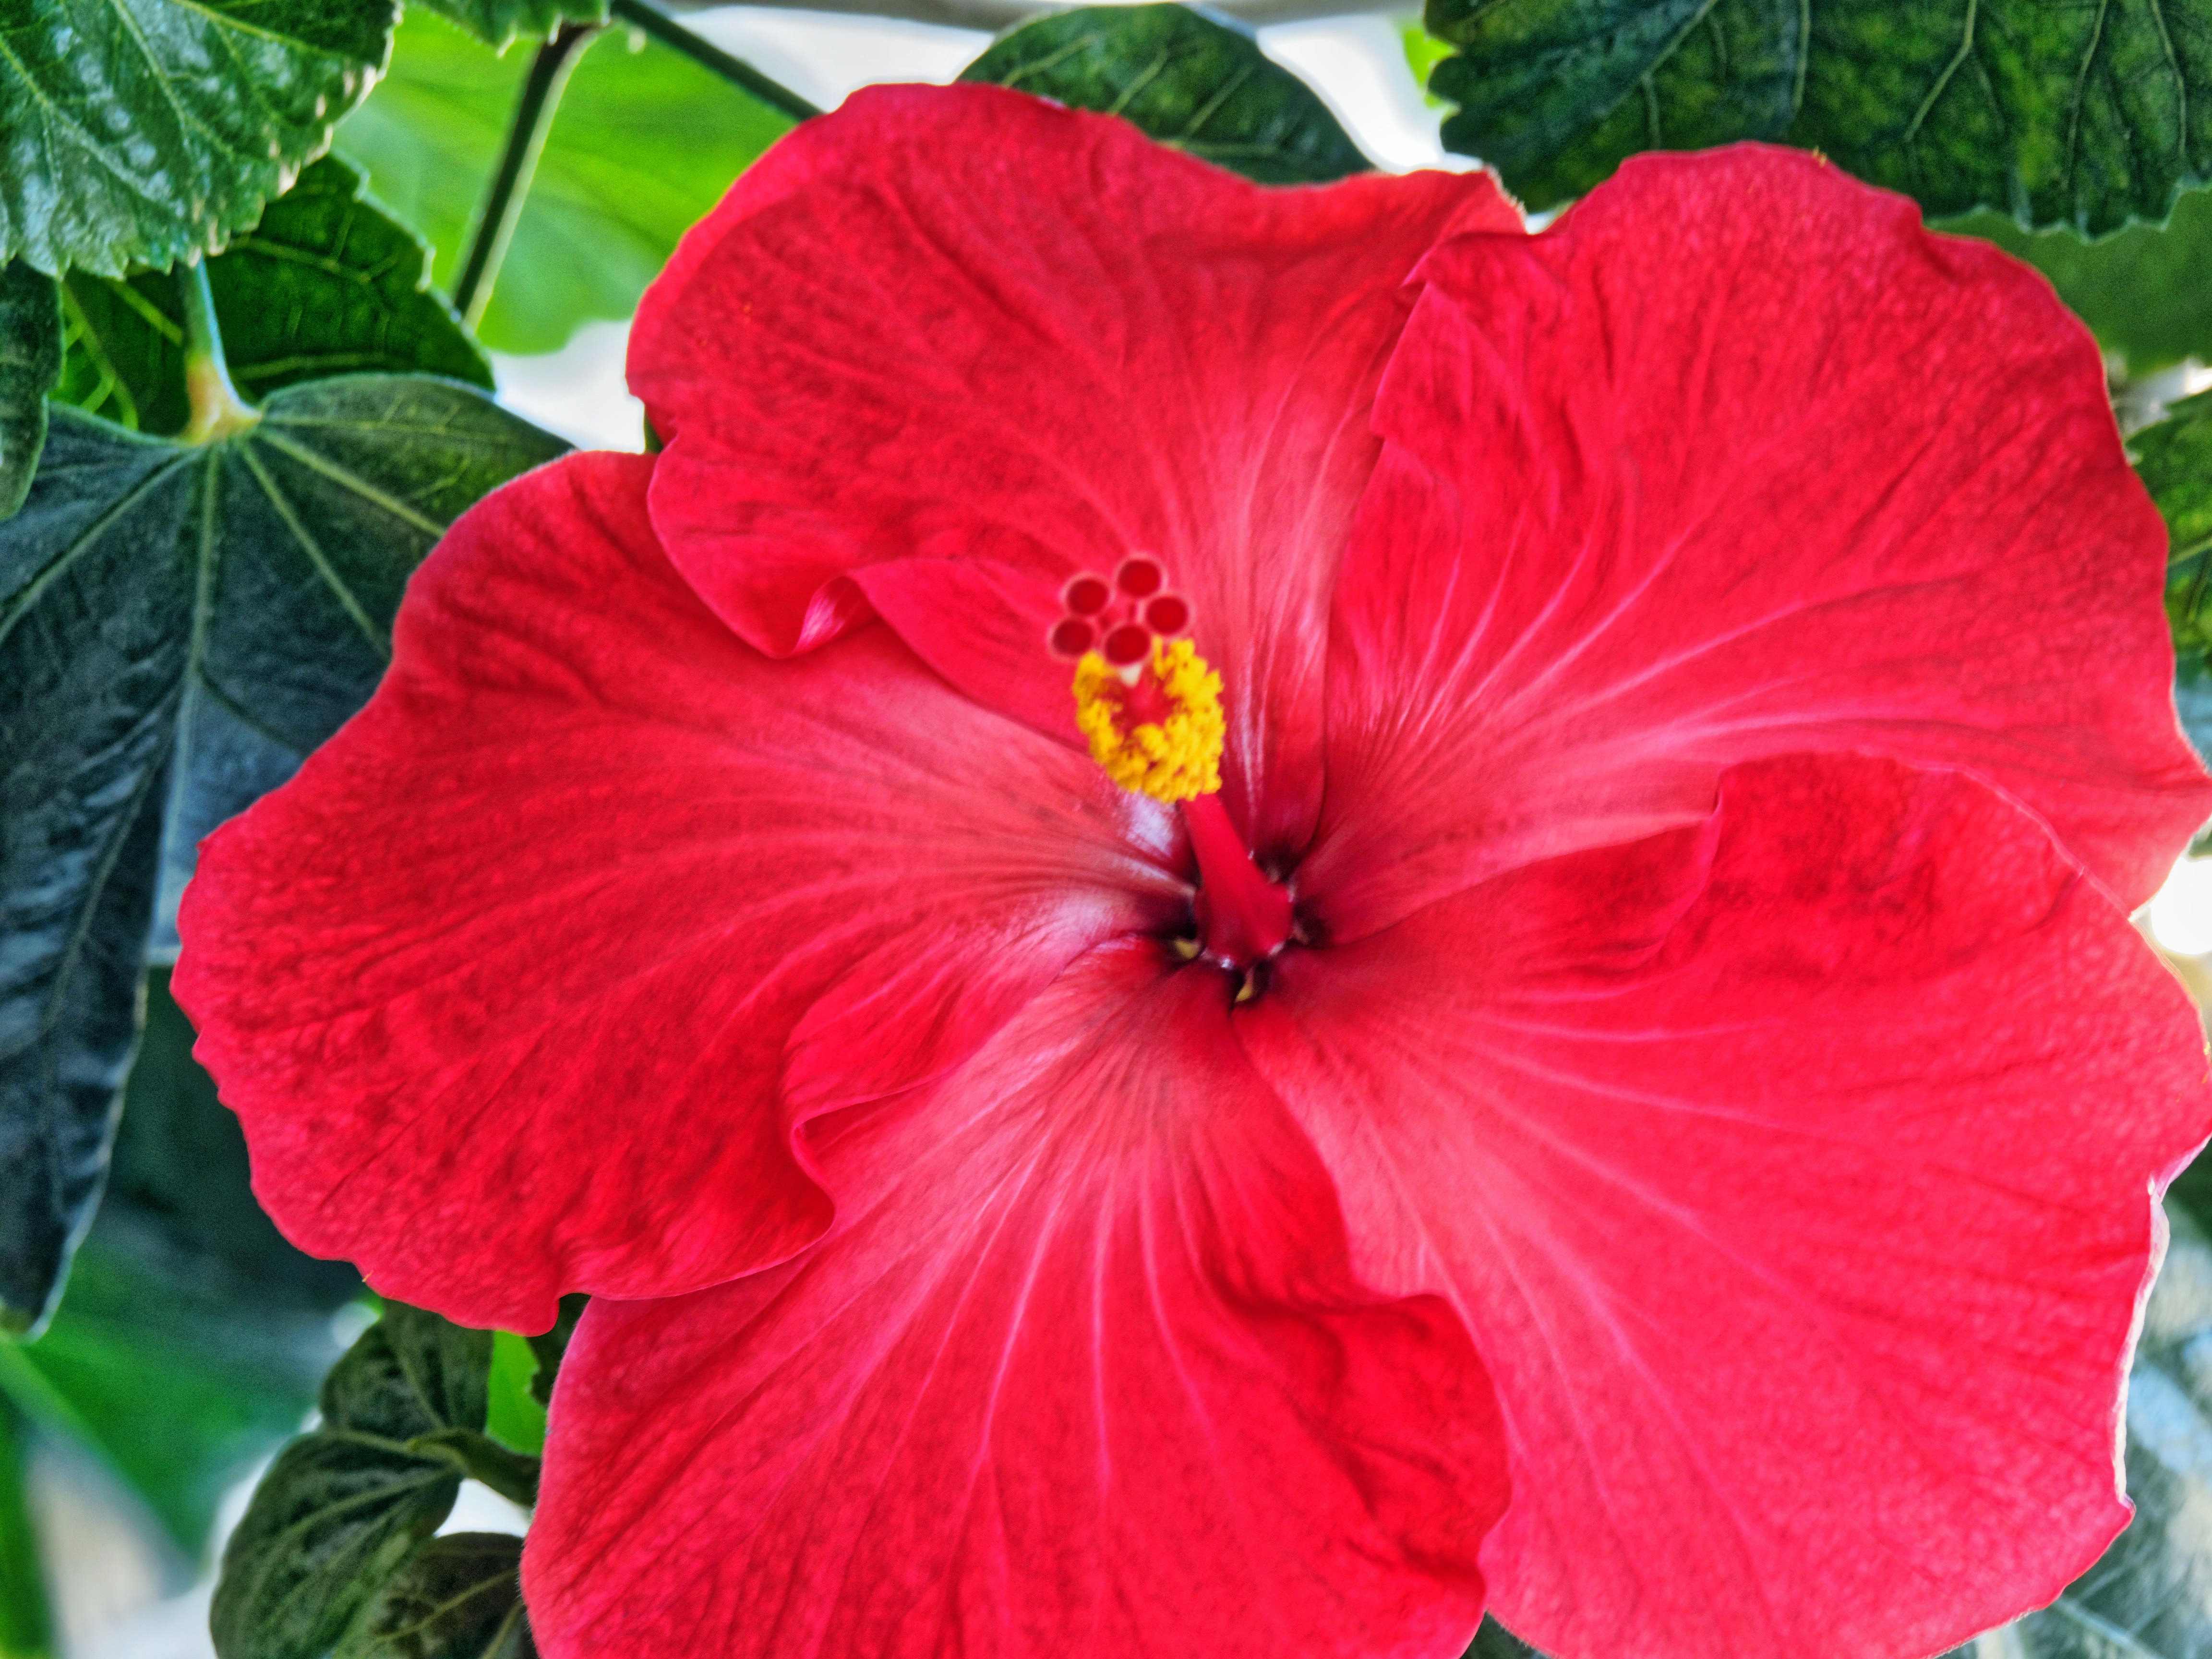 This should be Hibiscus-31.jpeg.  Is it missing?